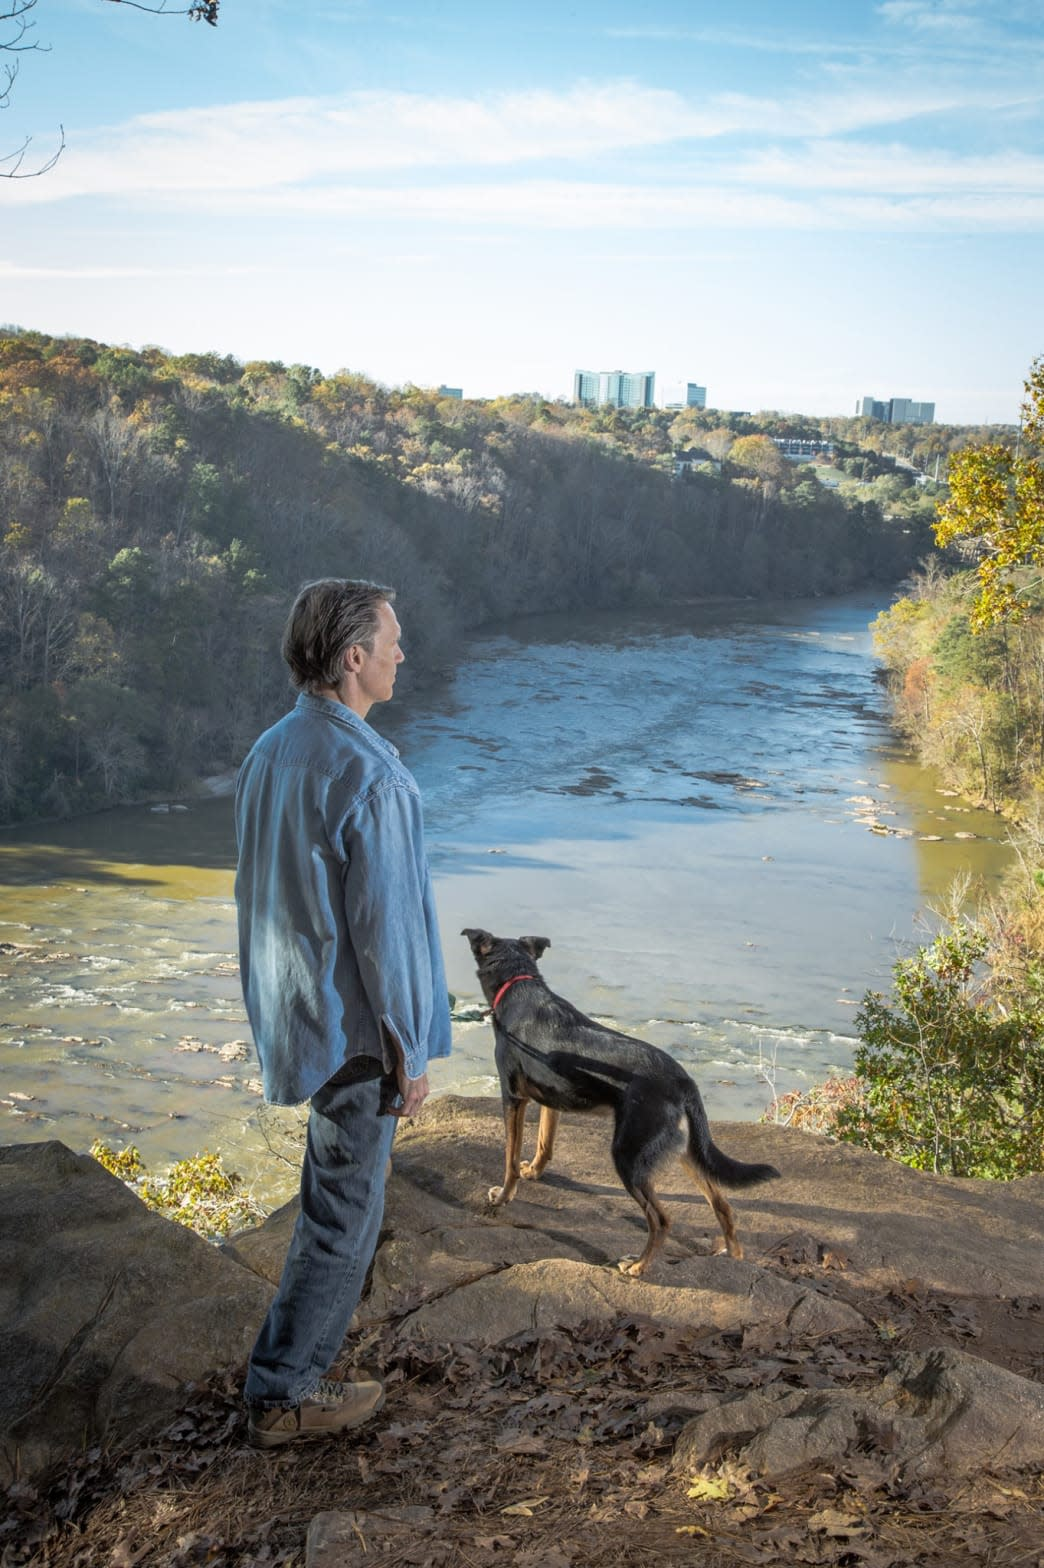 Man And Dog Overlooking The Chattahoochee River